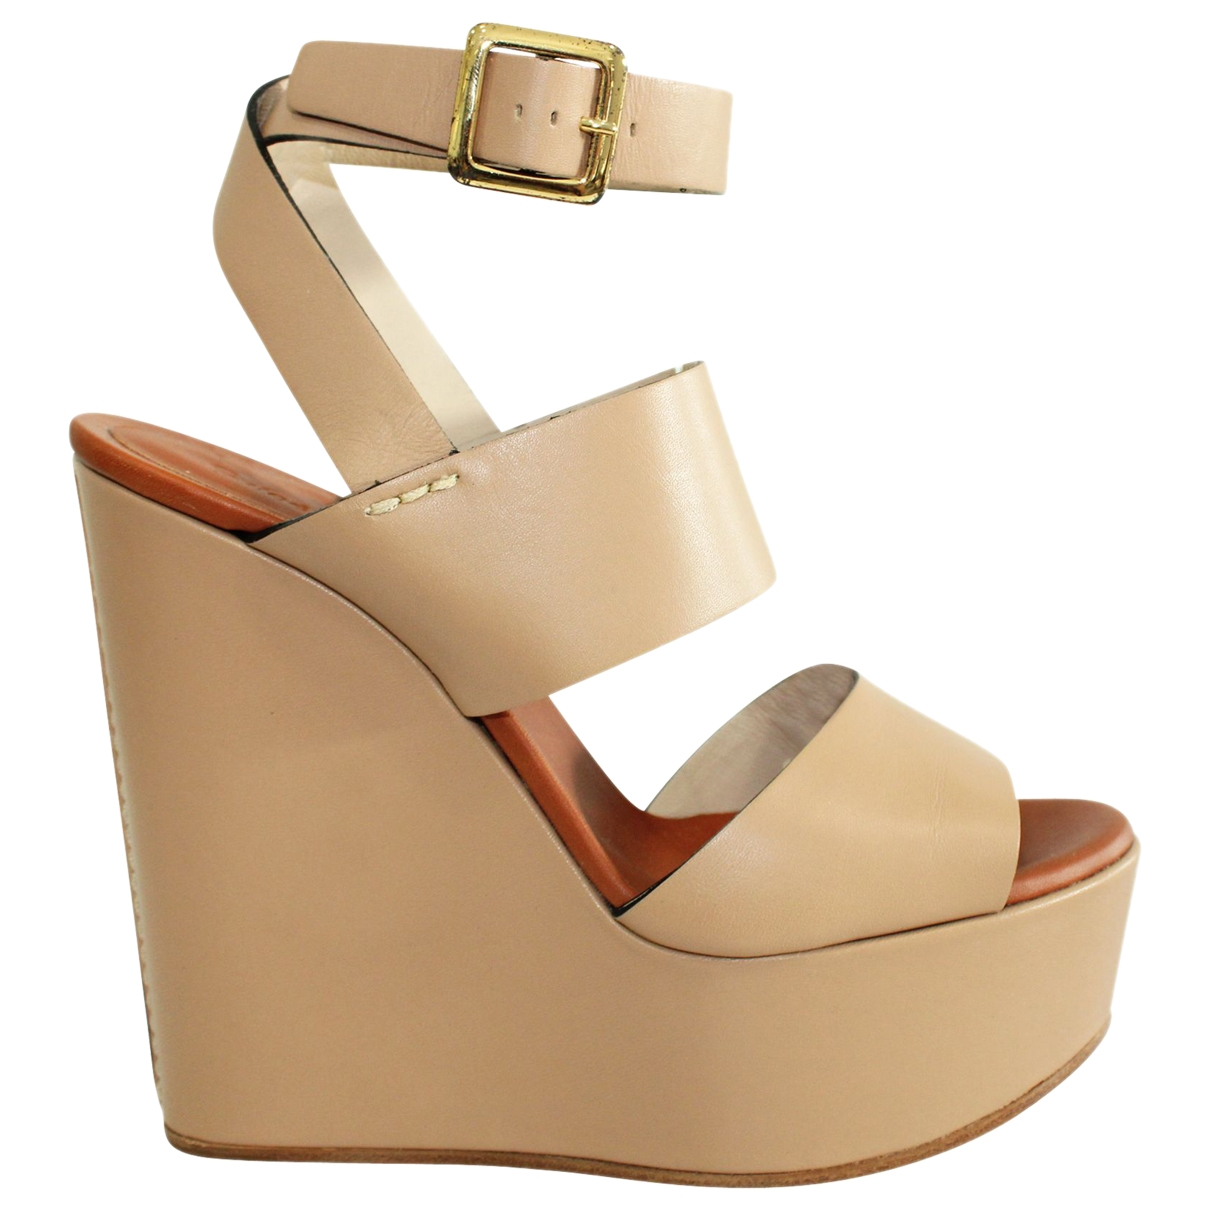 Chloé \N Brown Leather Sandals for Women 37 EU